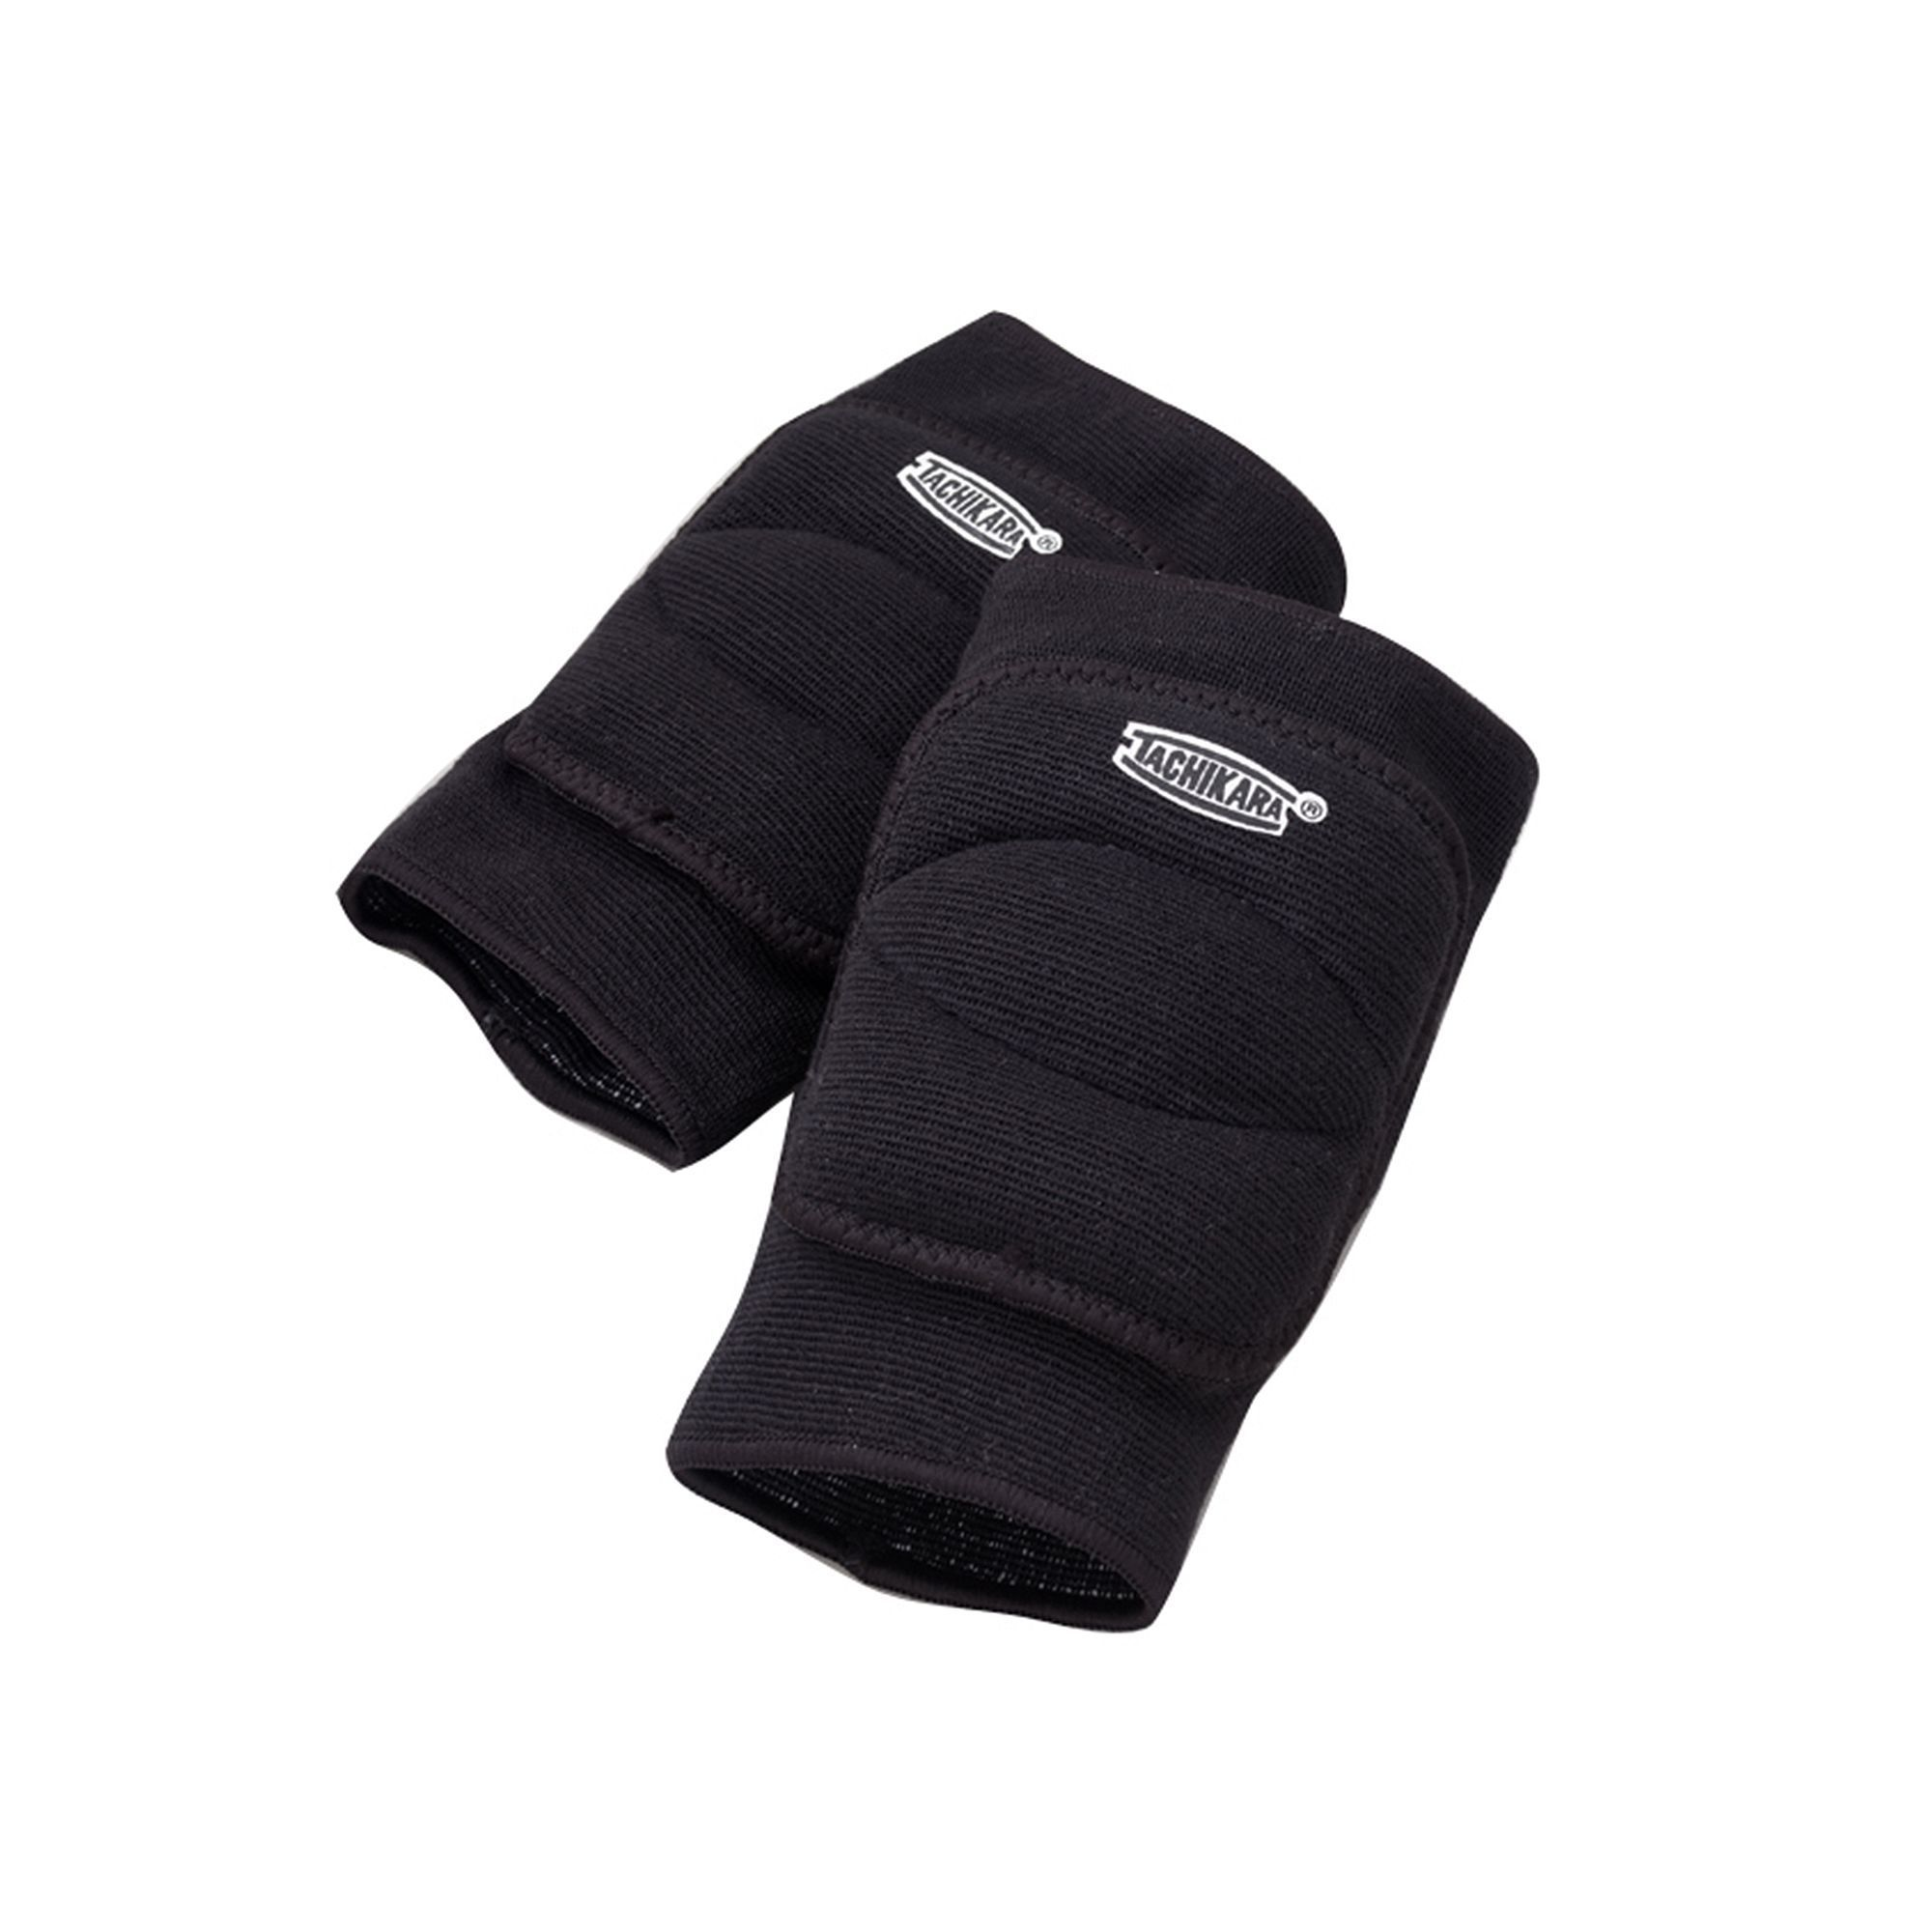 Asics volleyball knee pads